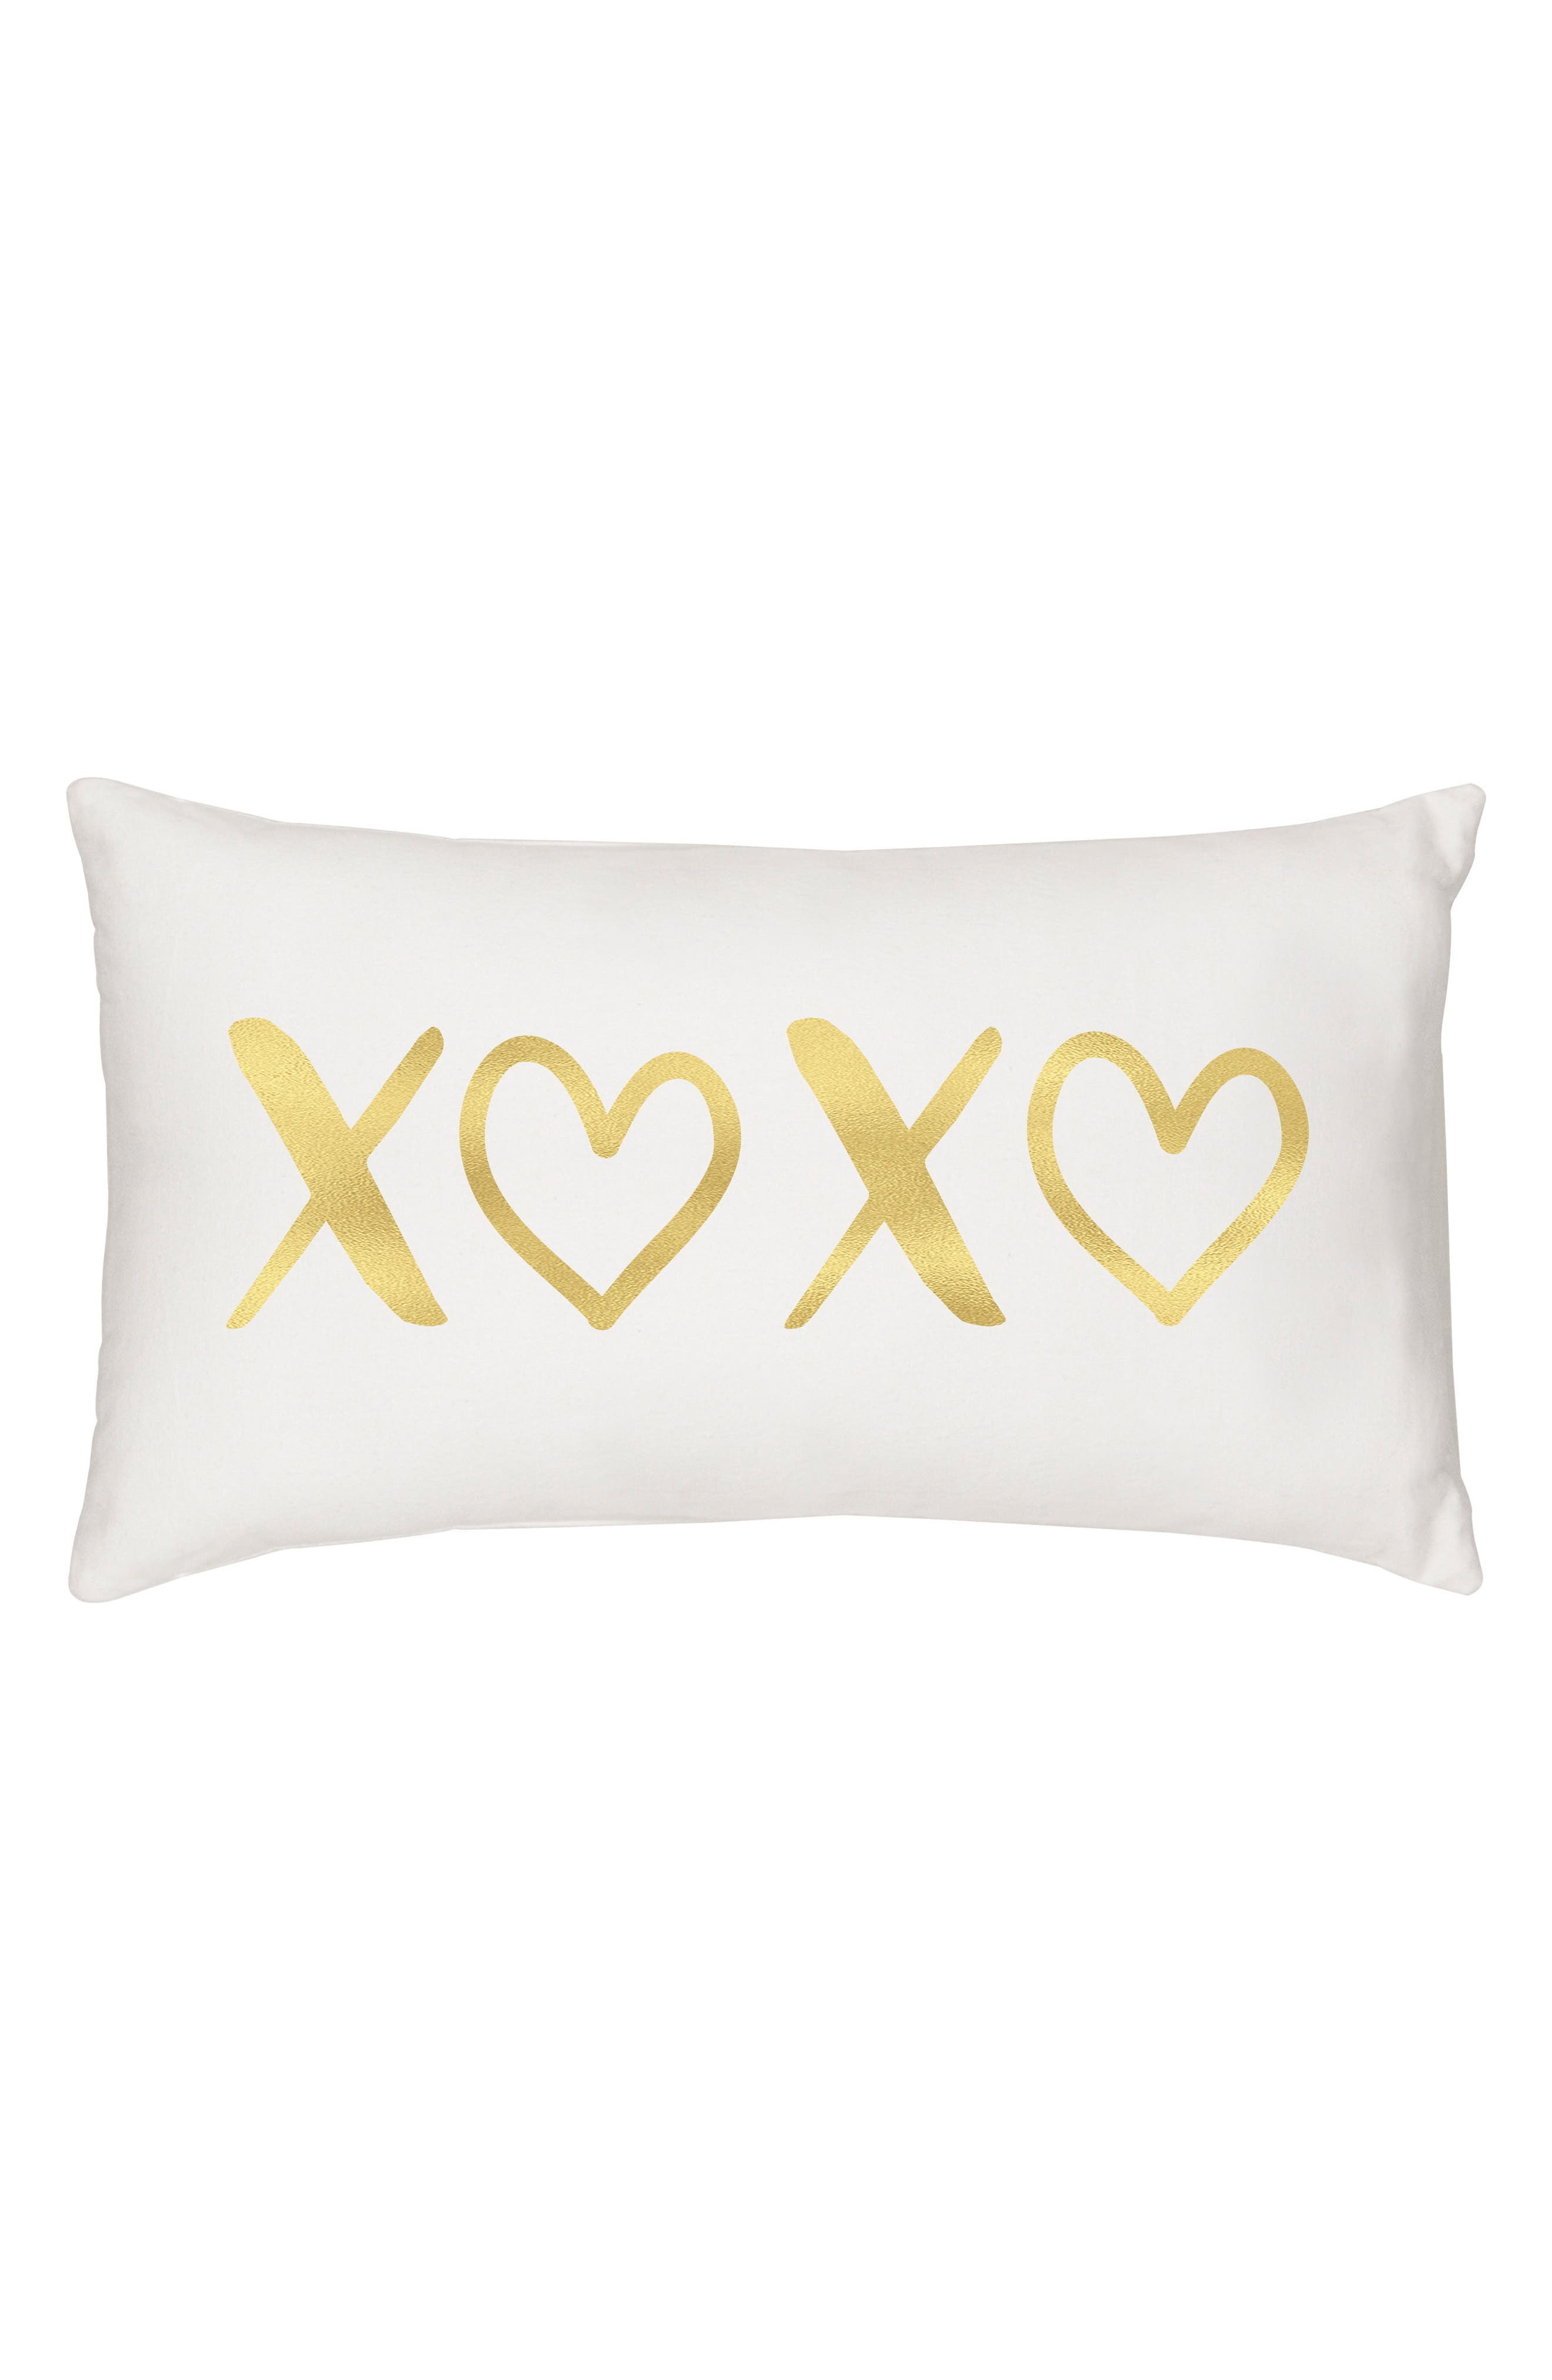 Main Image - Cathy's Concepts XOXO Accent Pillow